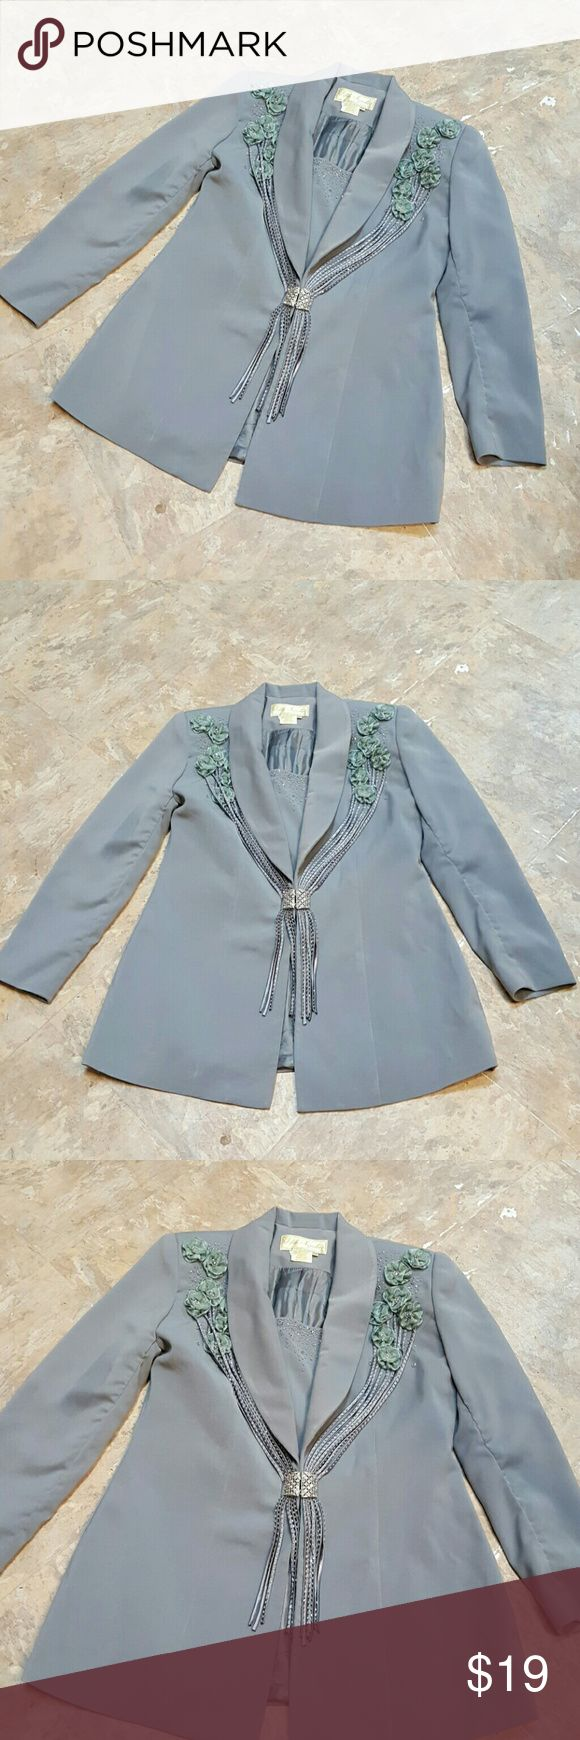 Vintage Fifth Sunday Exclusive Jacket Size 12 What a beautiful piece.  Lots of beautiful beads adorn the jacket as well as a beautiful silver clasp with clear rhinestones.   Flowers from fabric also adore the front.  In great condition with no stains, tares or missing beads.  The color is a beautiful gray/blue color.  The first few pictures are the true color.   Feel free to ask any questions before purchasing.   Thanks for shopping my closet! Fifth Sunday Jackets & Coats